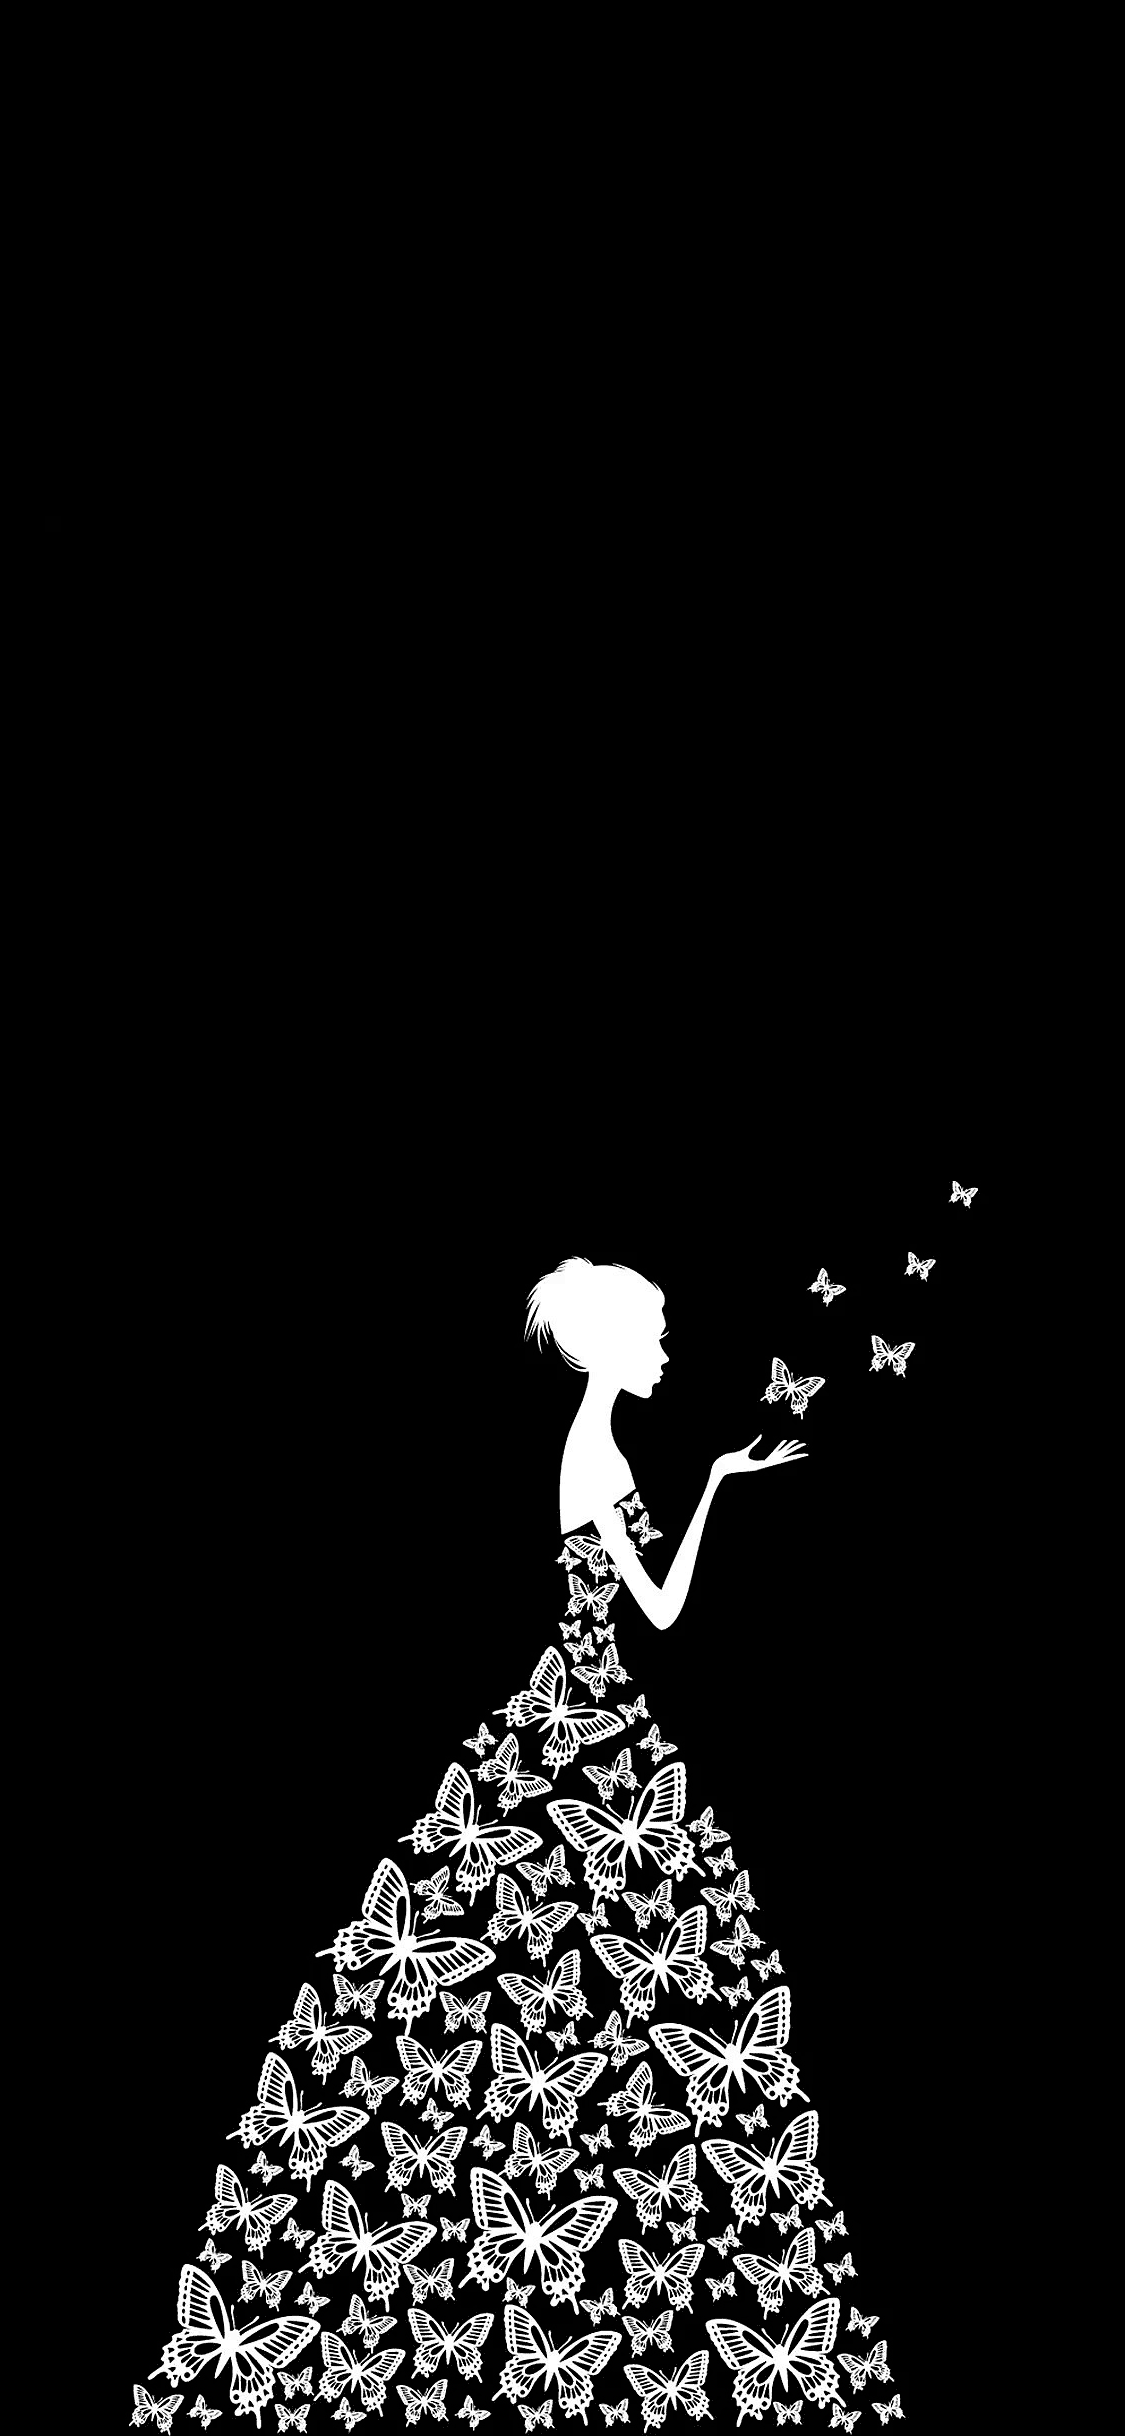 cool black wallpaper for iphone x